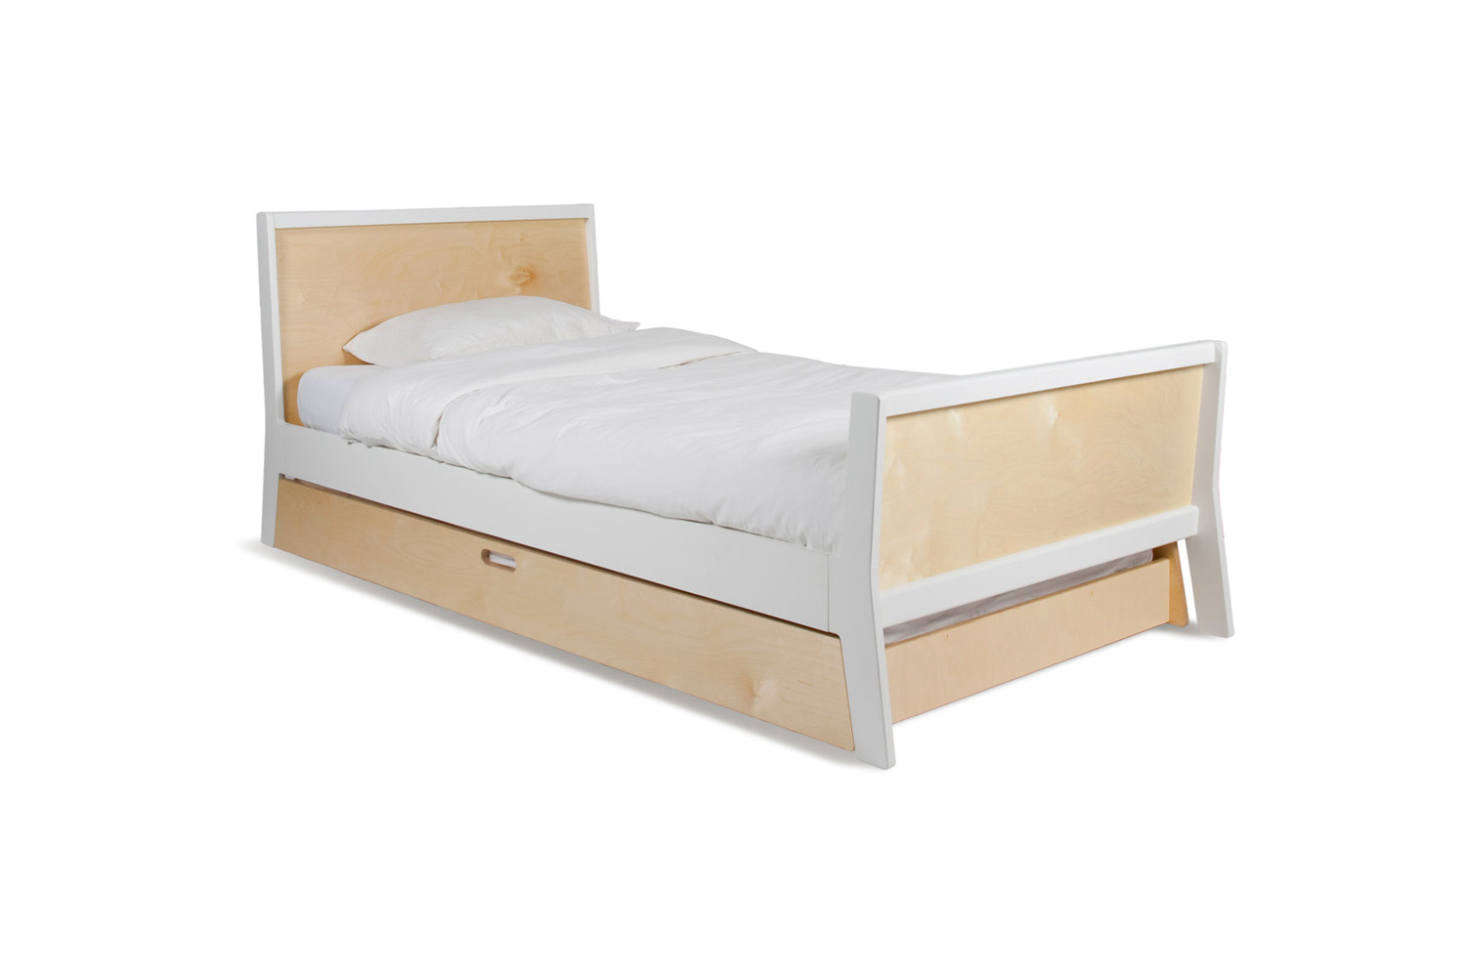 10 Easy Pieces Best Trundle Beds For Sleepovers Remodelista